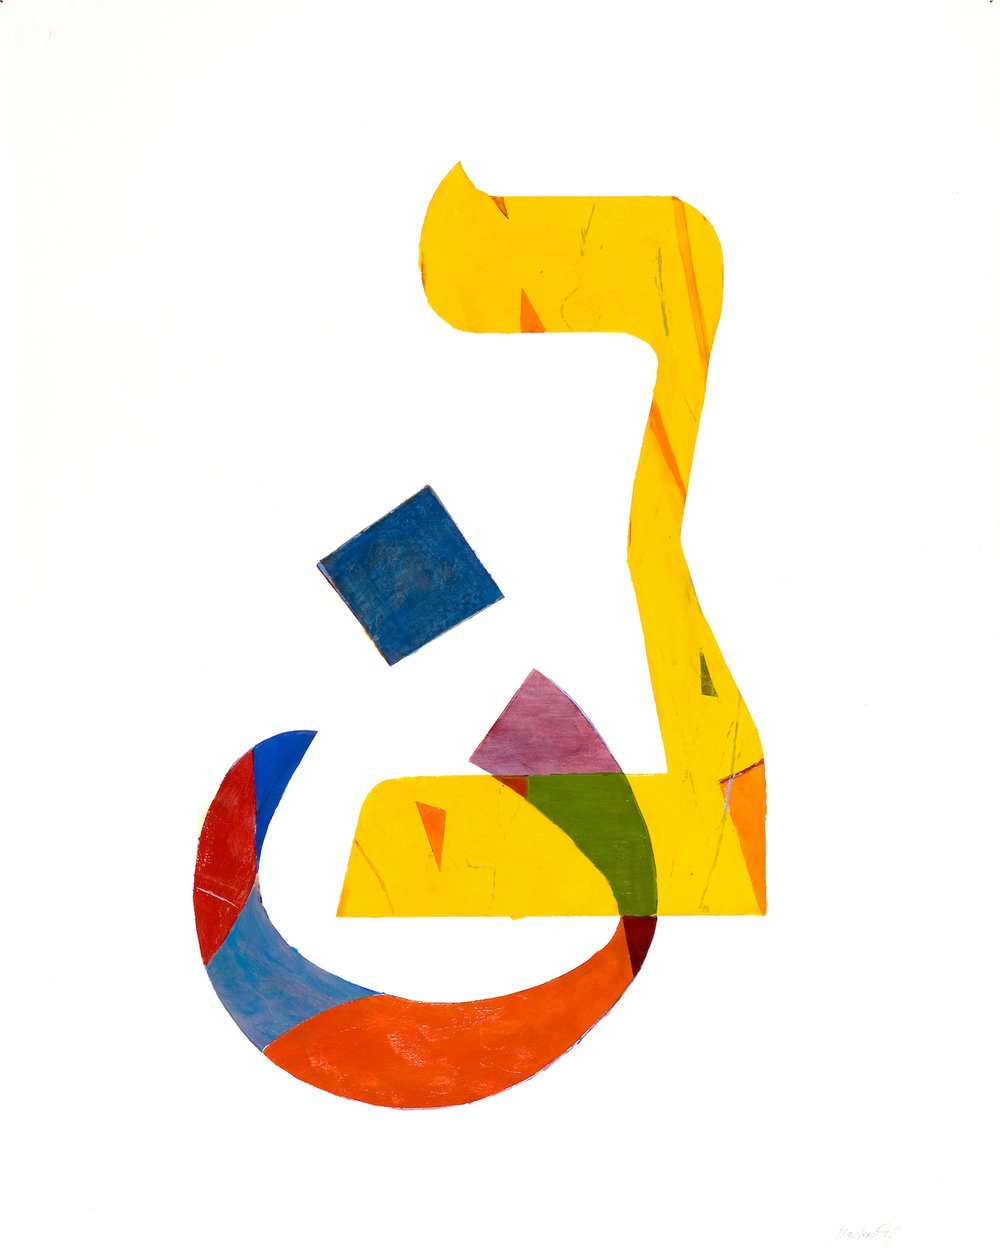 Joel Moskowitz,  Hebrew  Nun  / Arabic  Nuun ,  Acrylic and collage on paper, 23x29